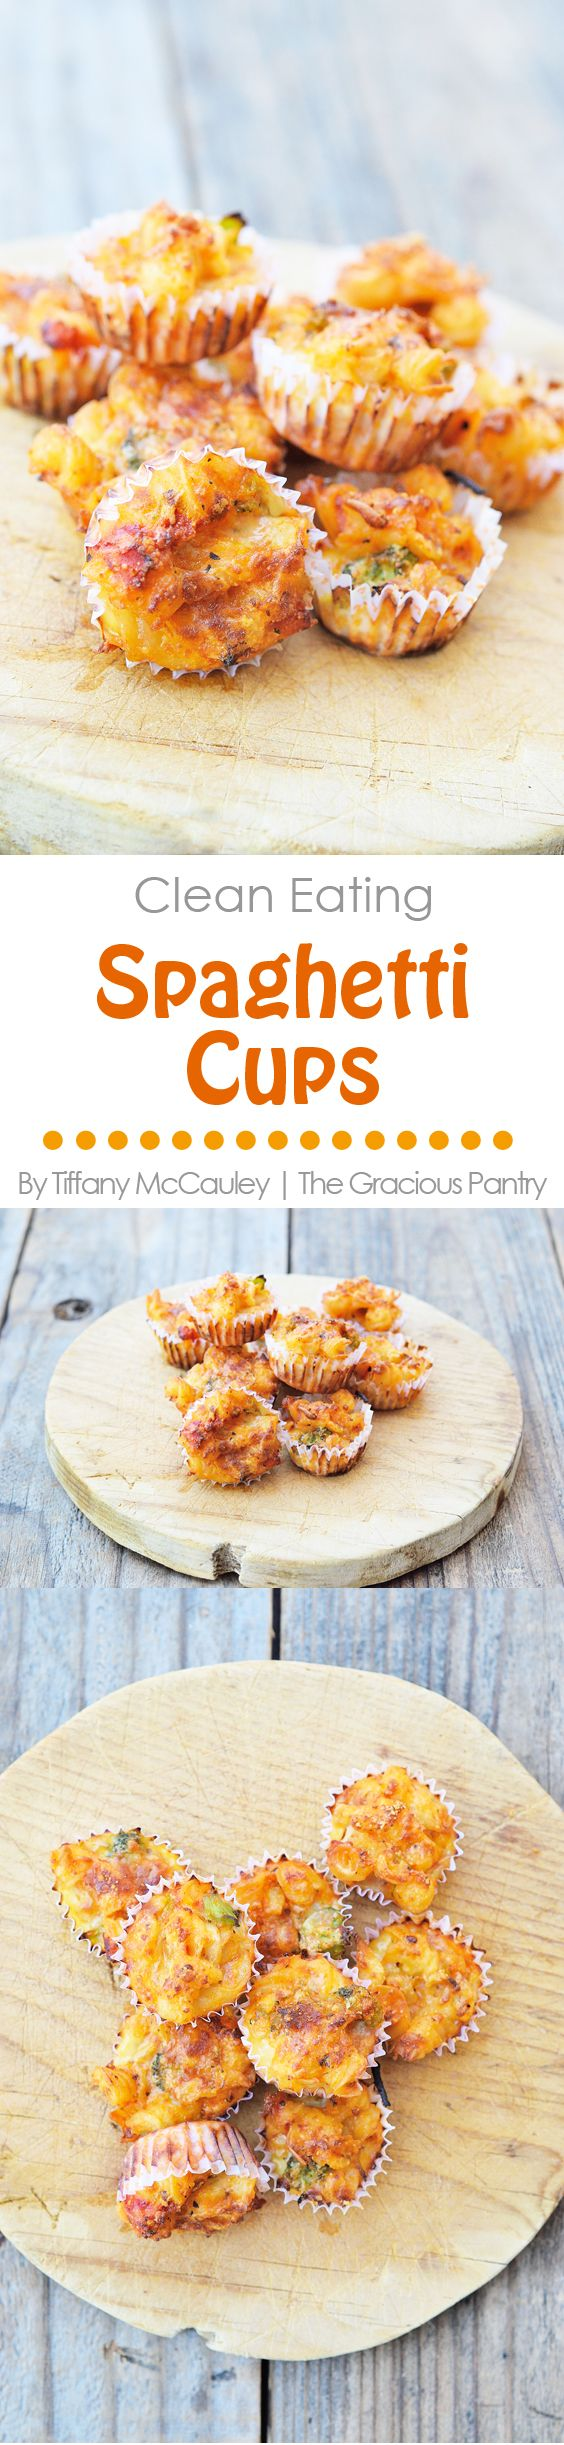 Clean Eating Recipes | Pasta Cups | Spaghetti Cups | Back To School | Lunchbox Ideas